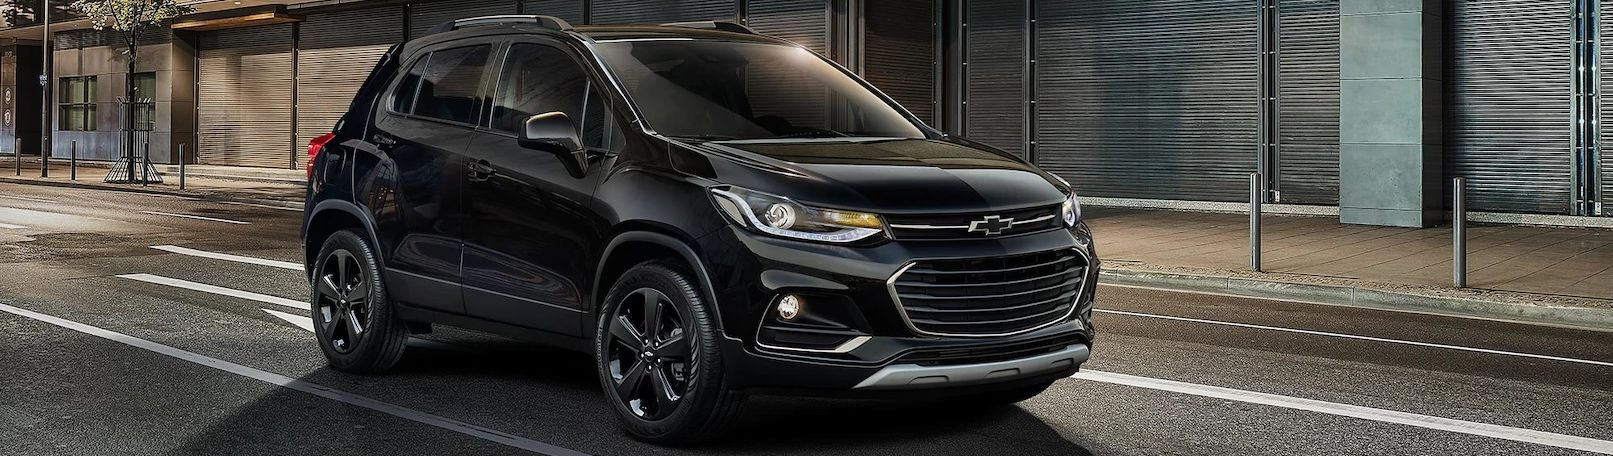 2018 Chevrolet Trax For Sale In Youngstown Oh Sweeney Chevrolet